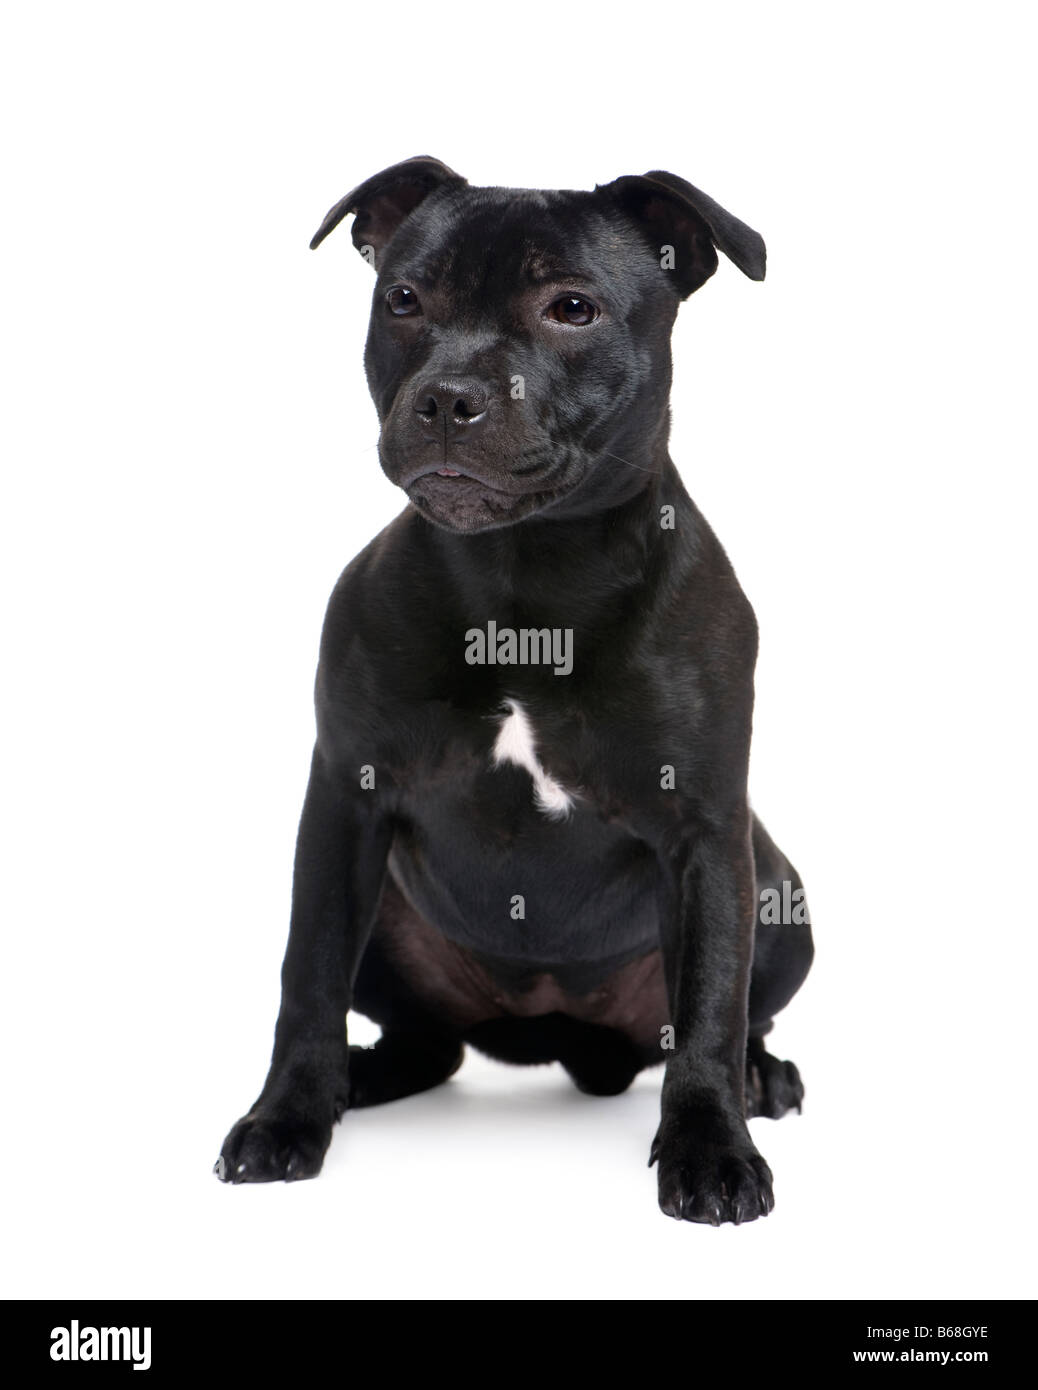 Staffordshire Bull Terrier in front of a white background - Stock Image